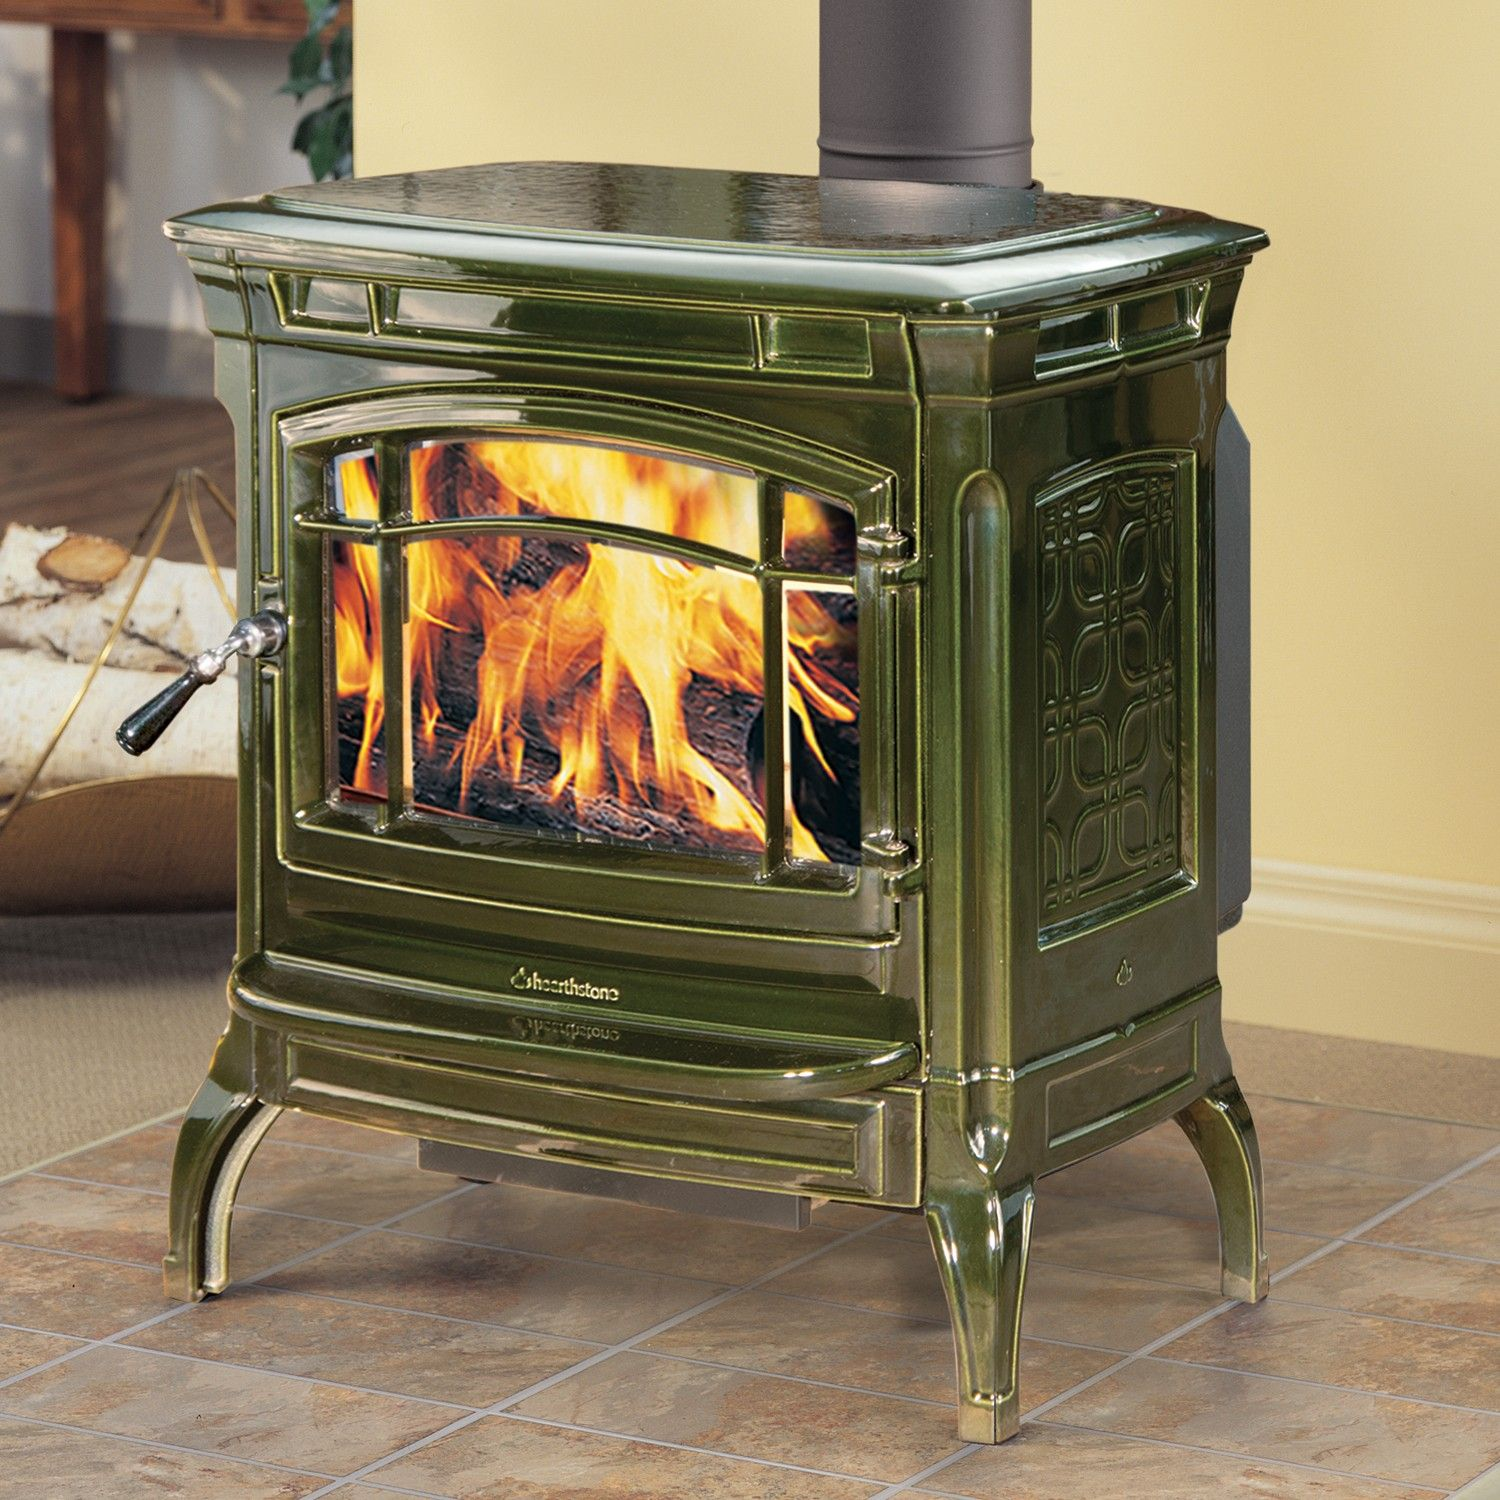 Shelburne 8371 wood stove with with basil majolica enamel finish ...